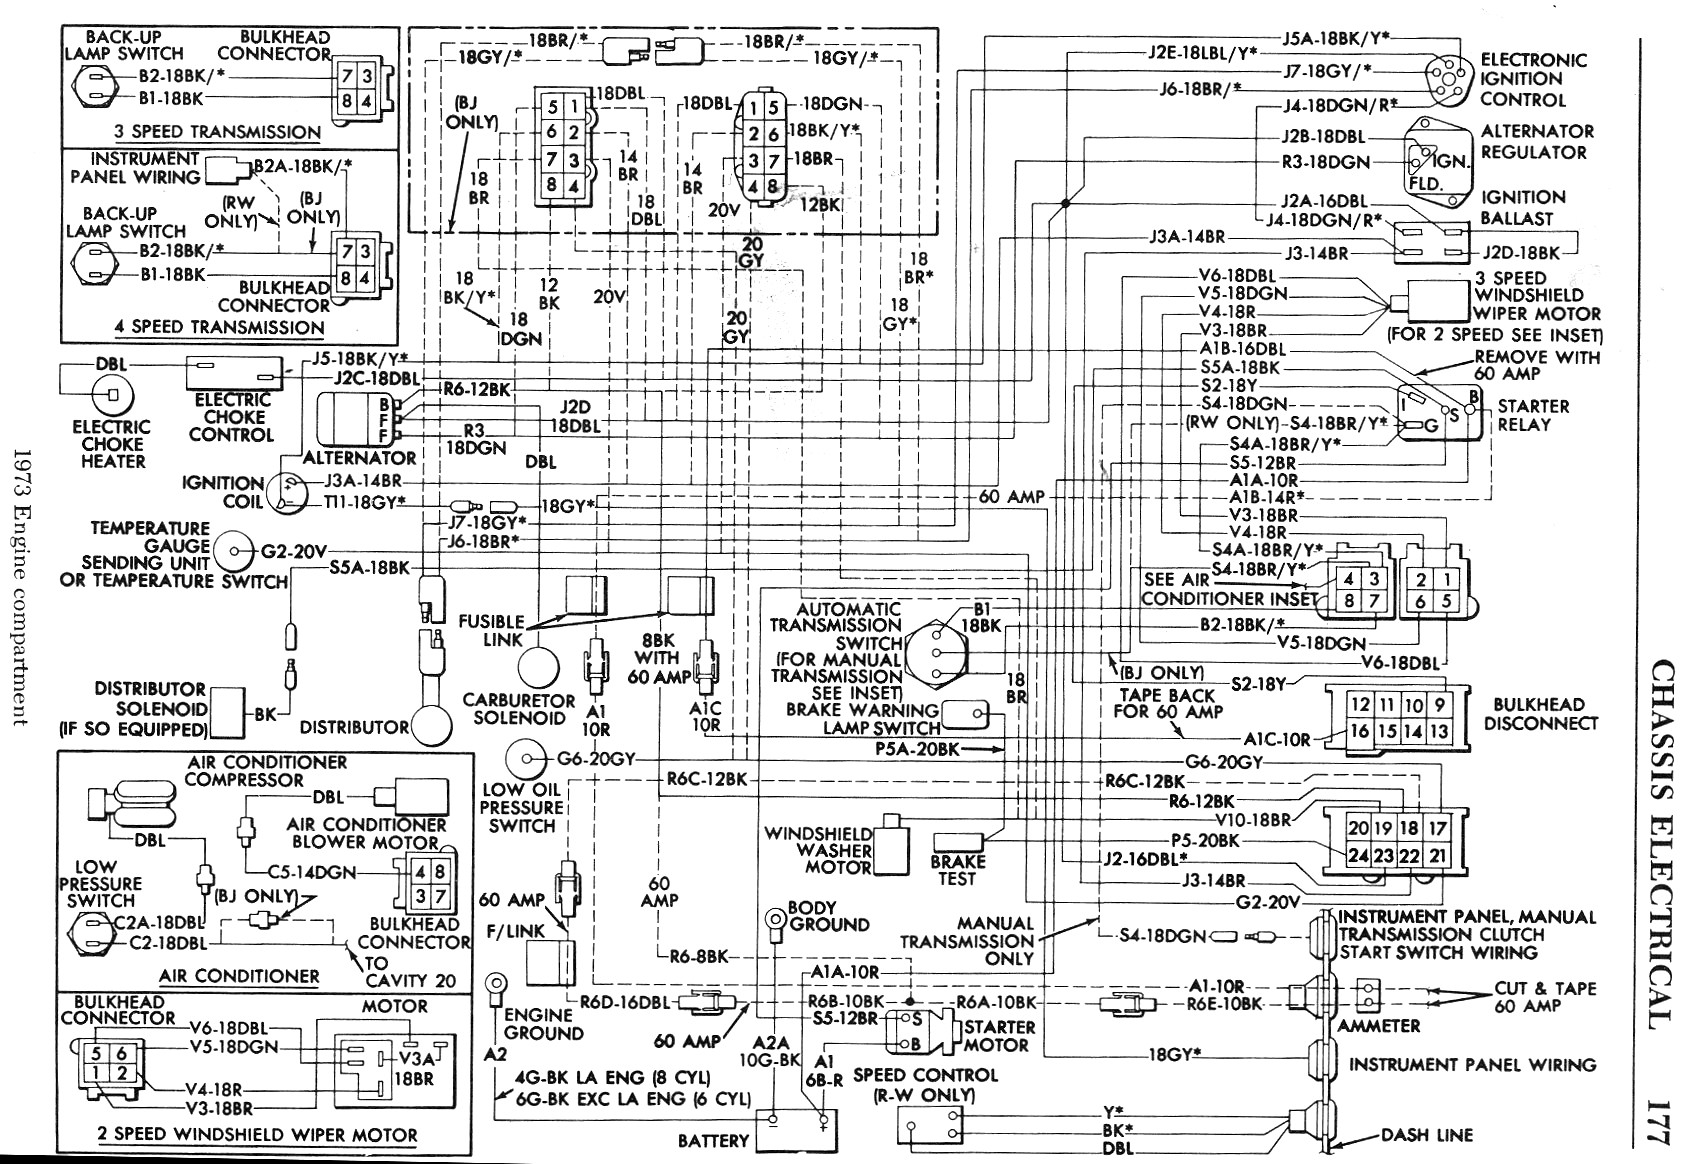 5098823 73B BodyEngineCompartmentWiringDiagram 70 cuda wiring diagram 70 charger wiring diagram \u2022 wiring diagrams wiring diagram for 1968 plymouth roadrunner at reclaimingppi.co